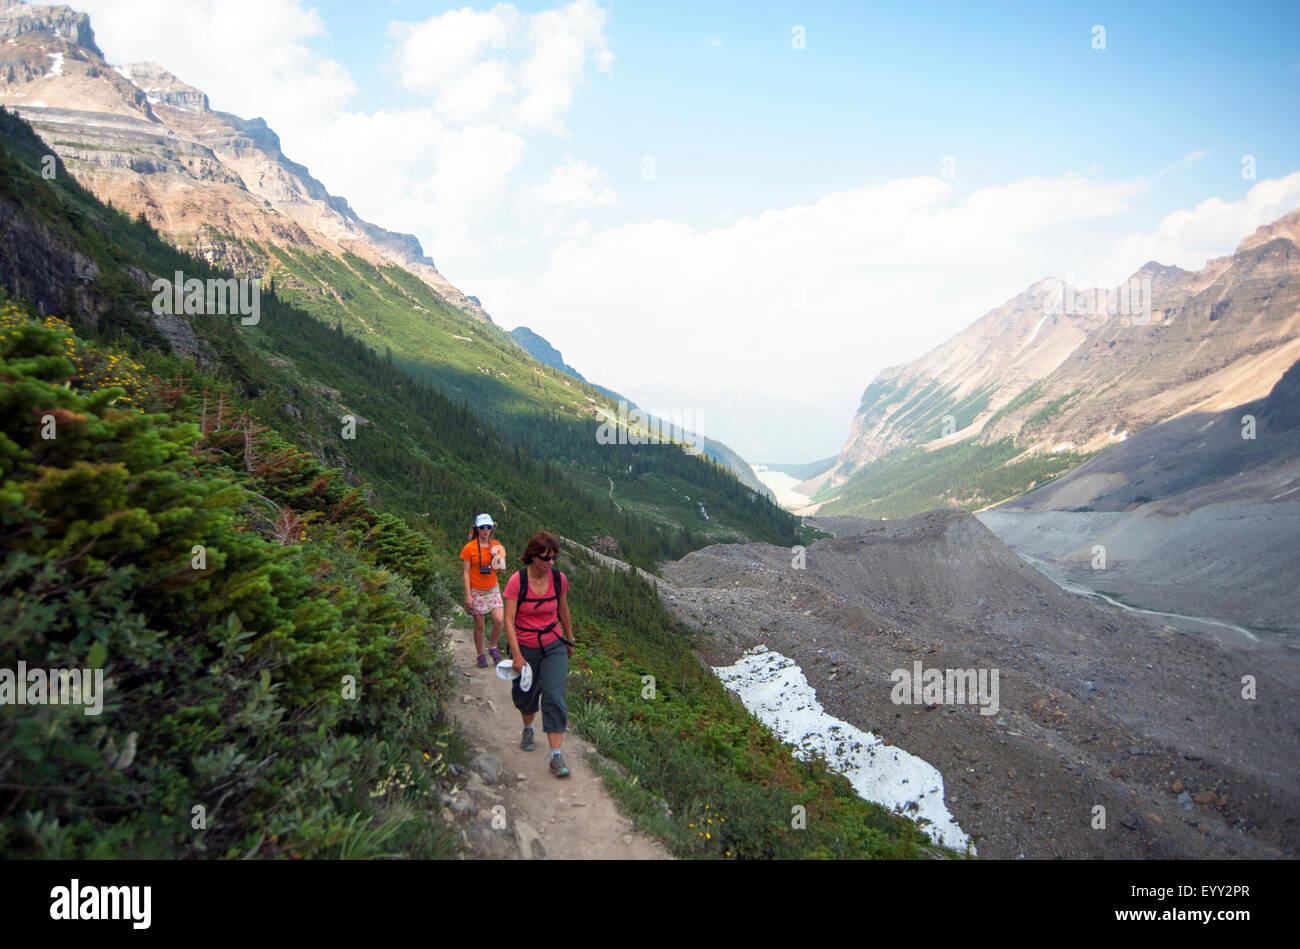 Caucasian mother and daughter hiking on Six Glaciers Trail, Banff, Alberta, Canada - Stock Image